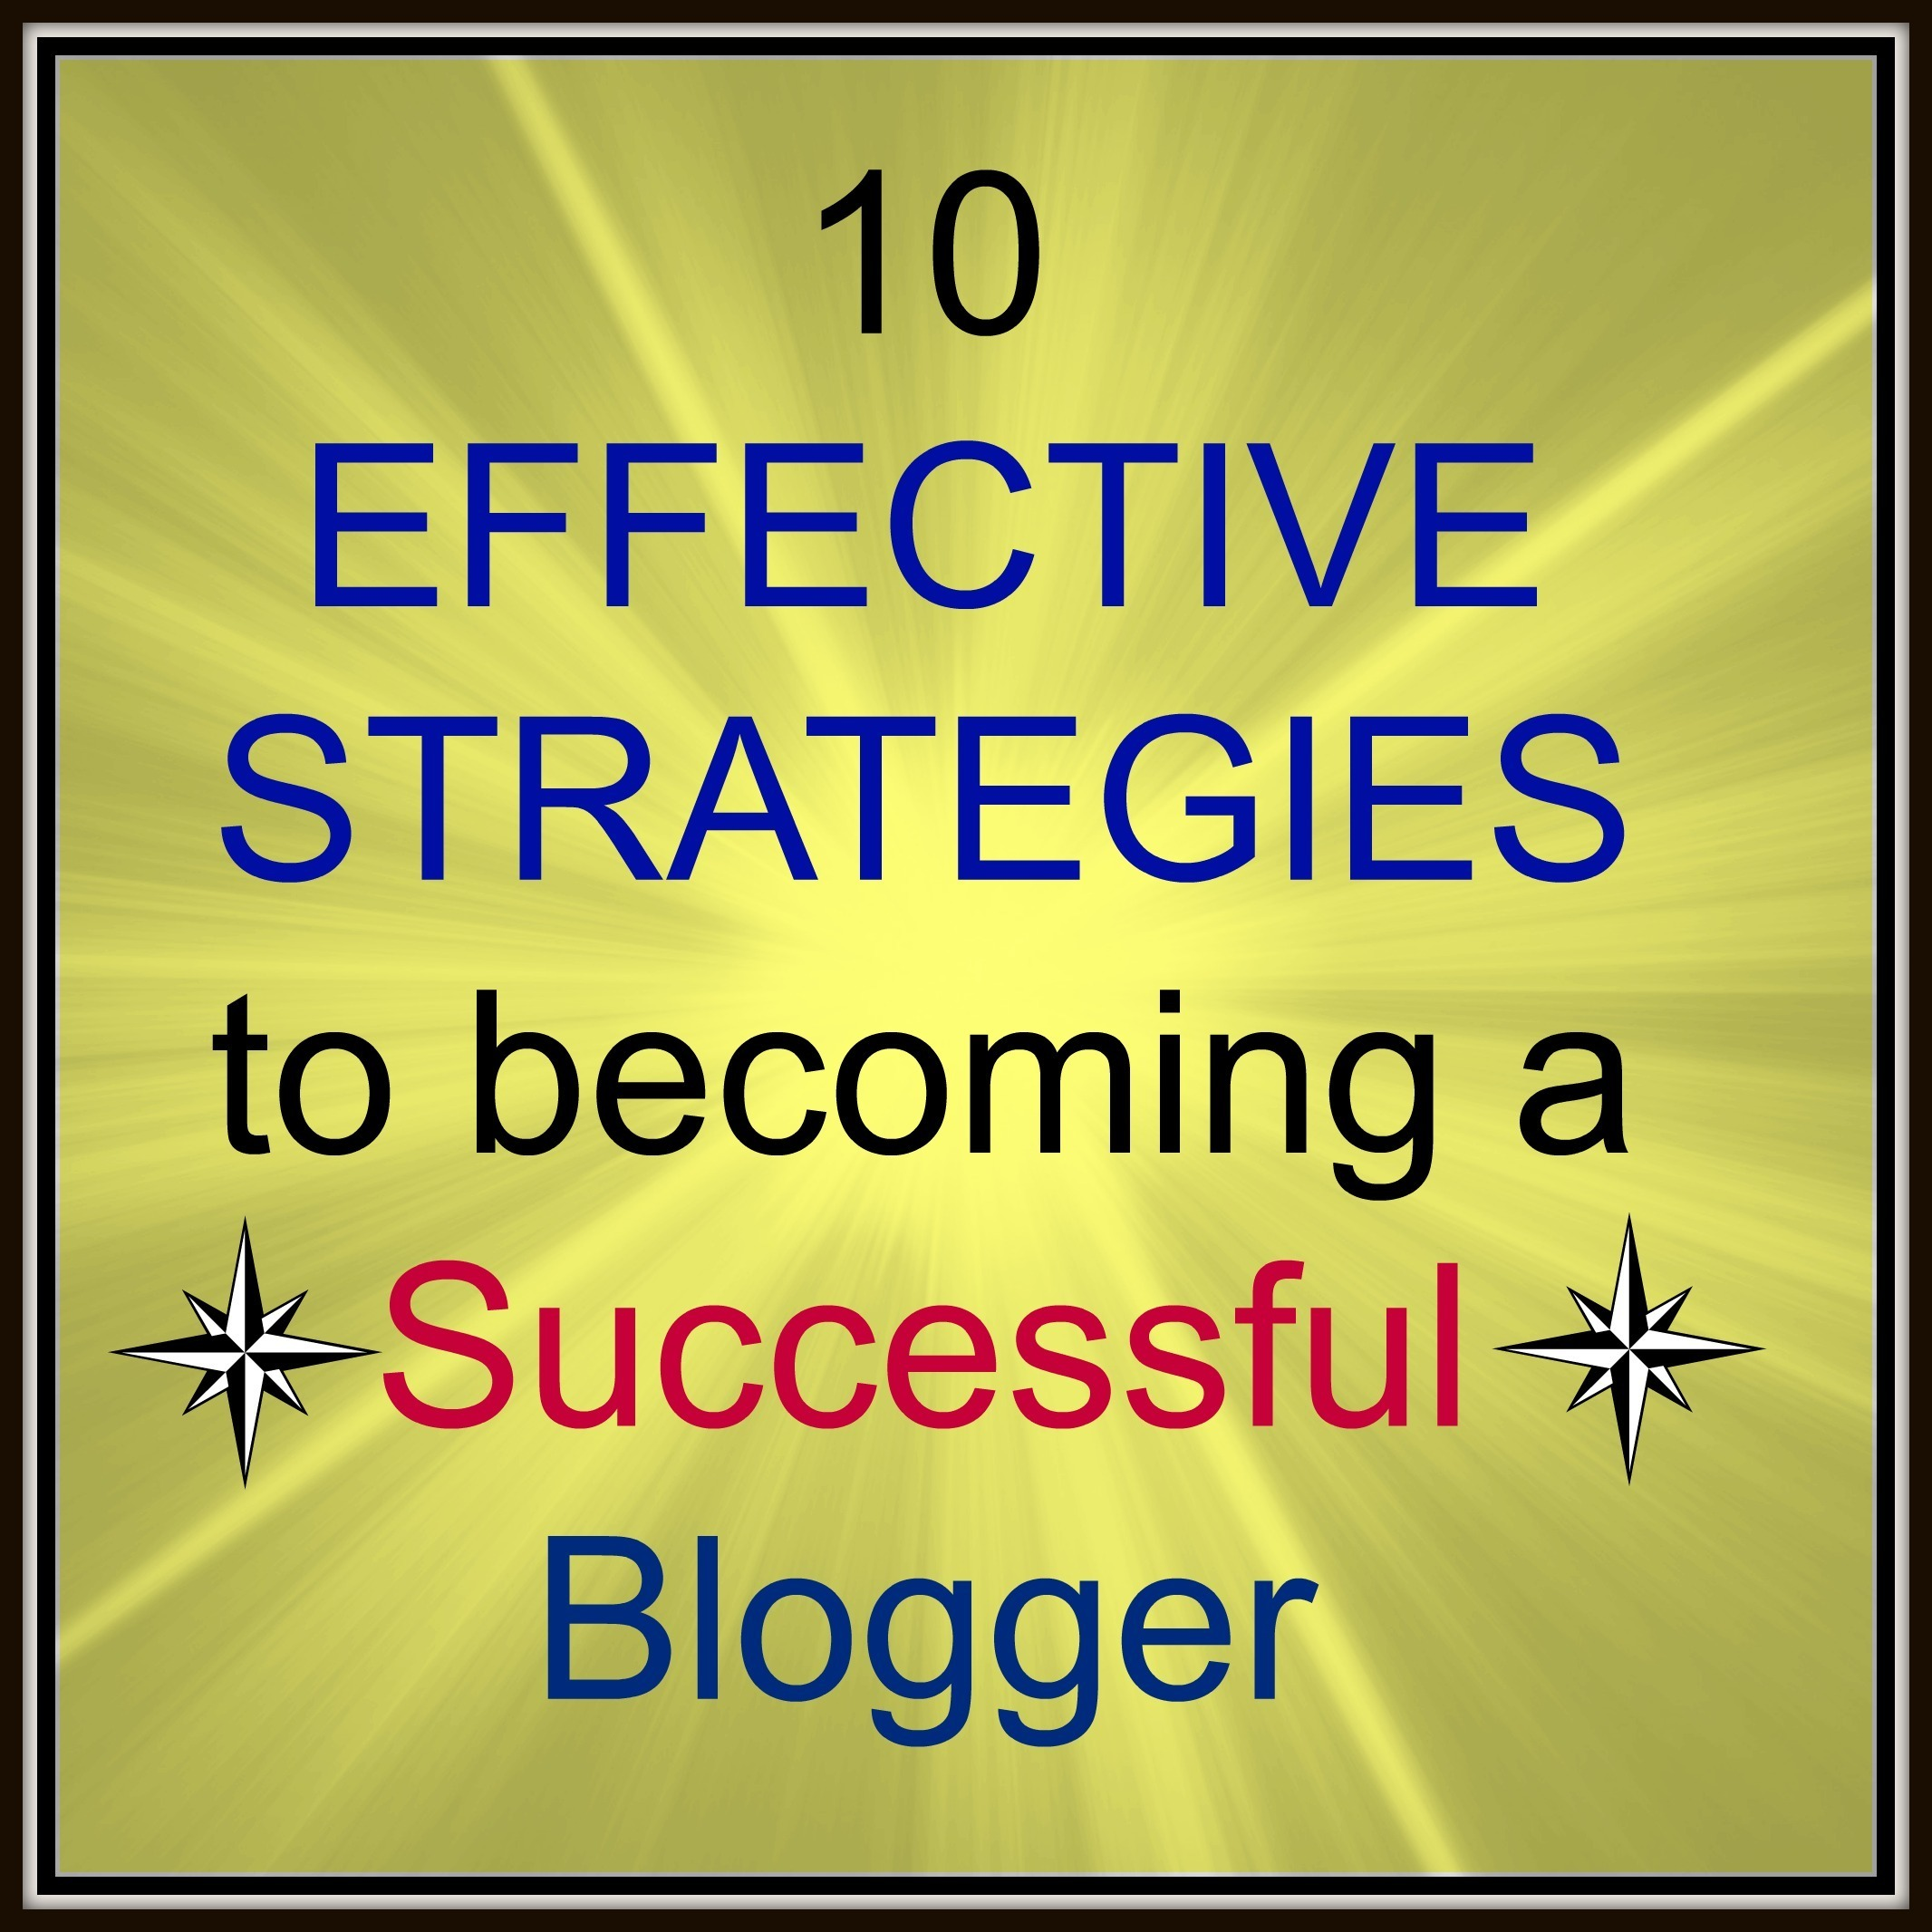 10 Effective Strategies to becoming a successful blogger